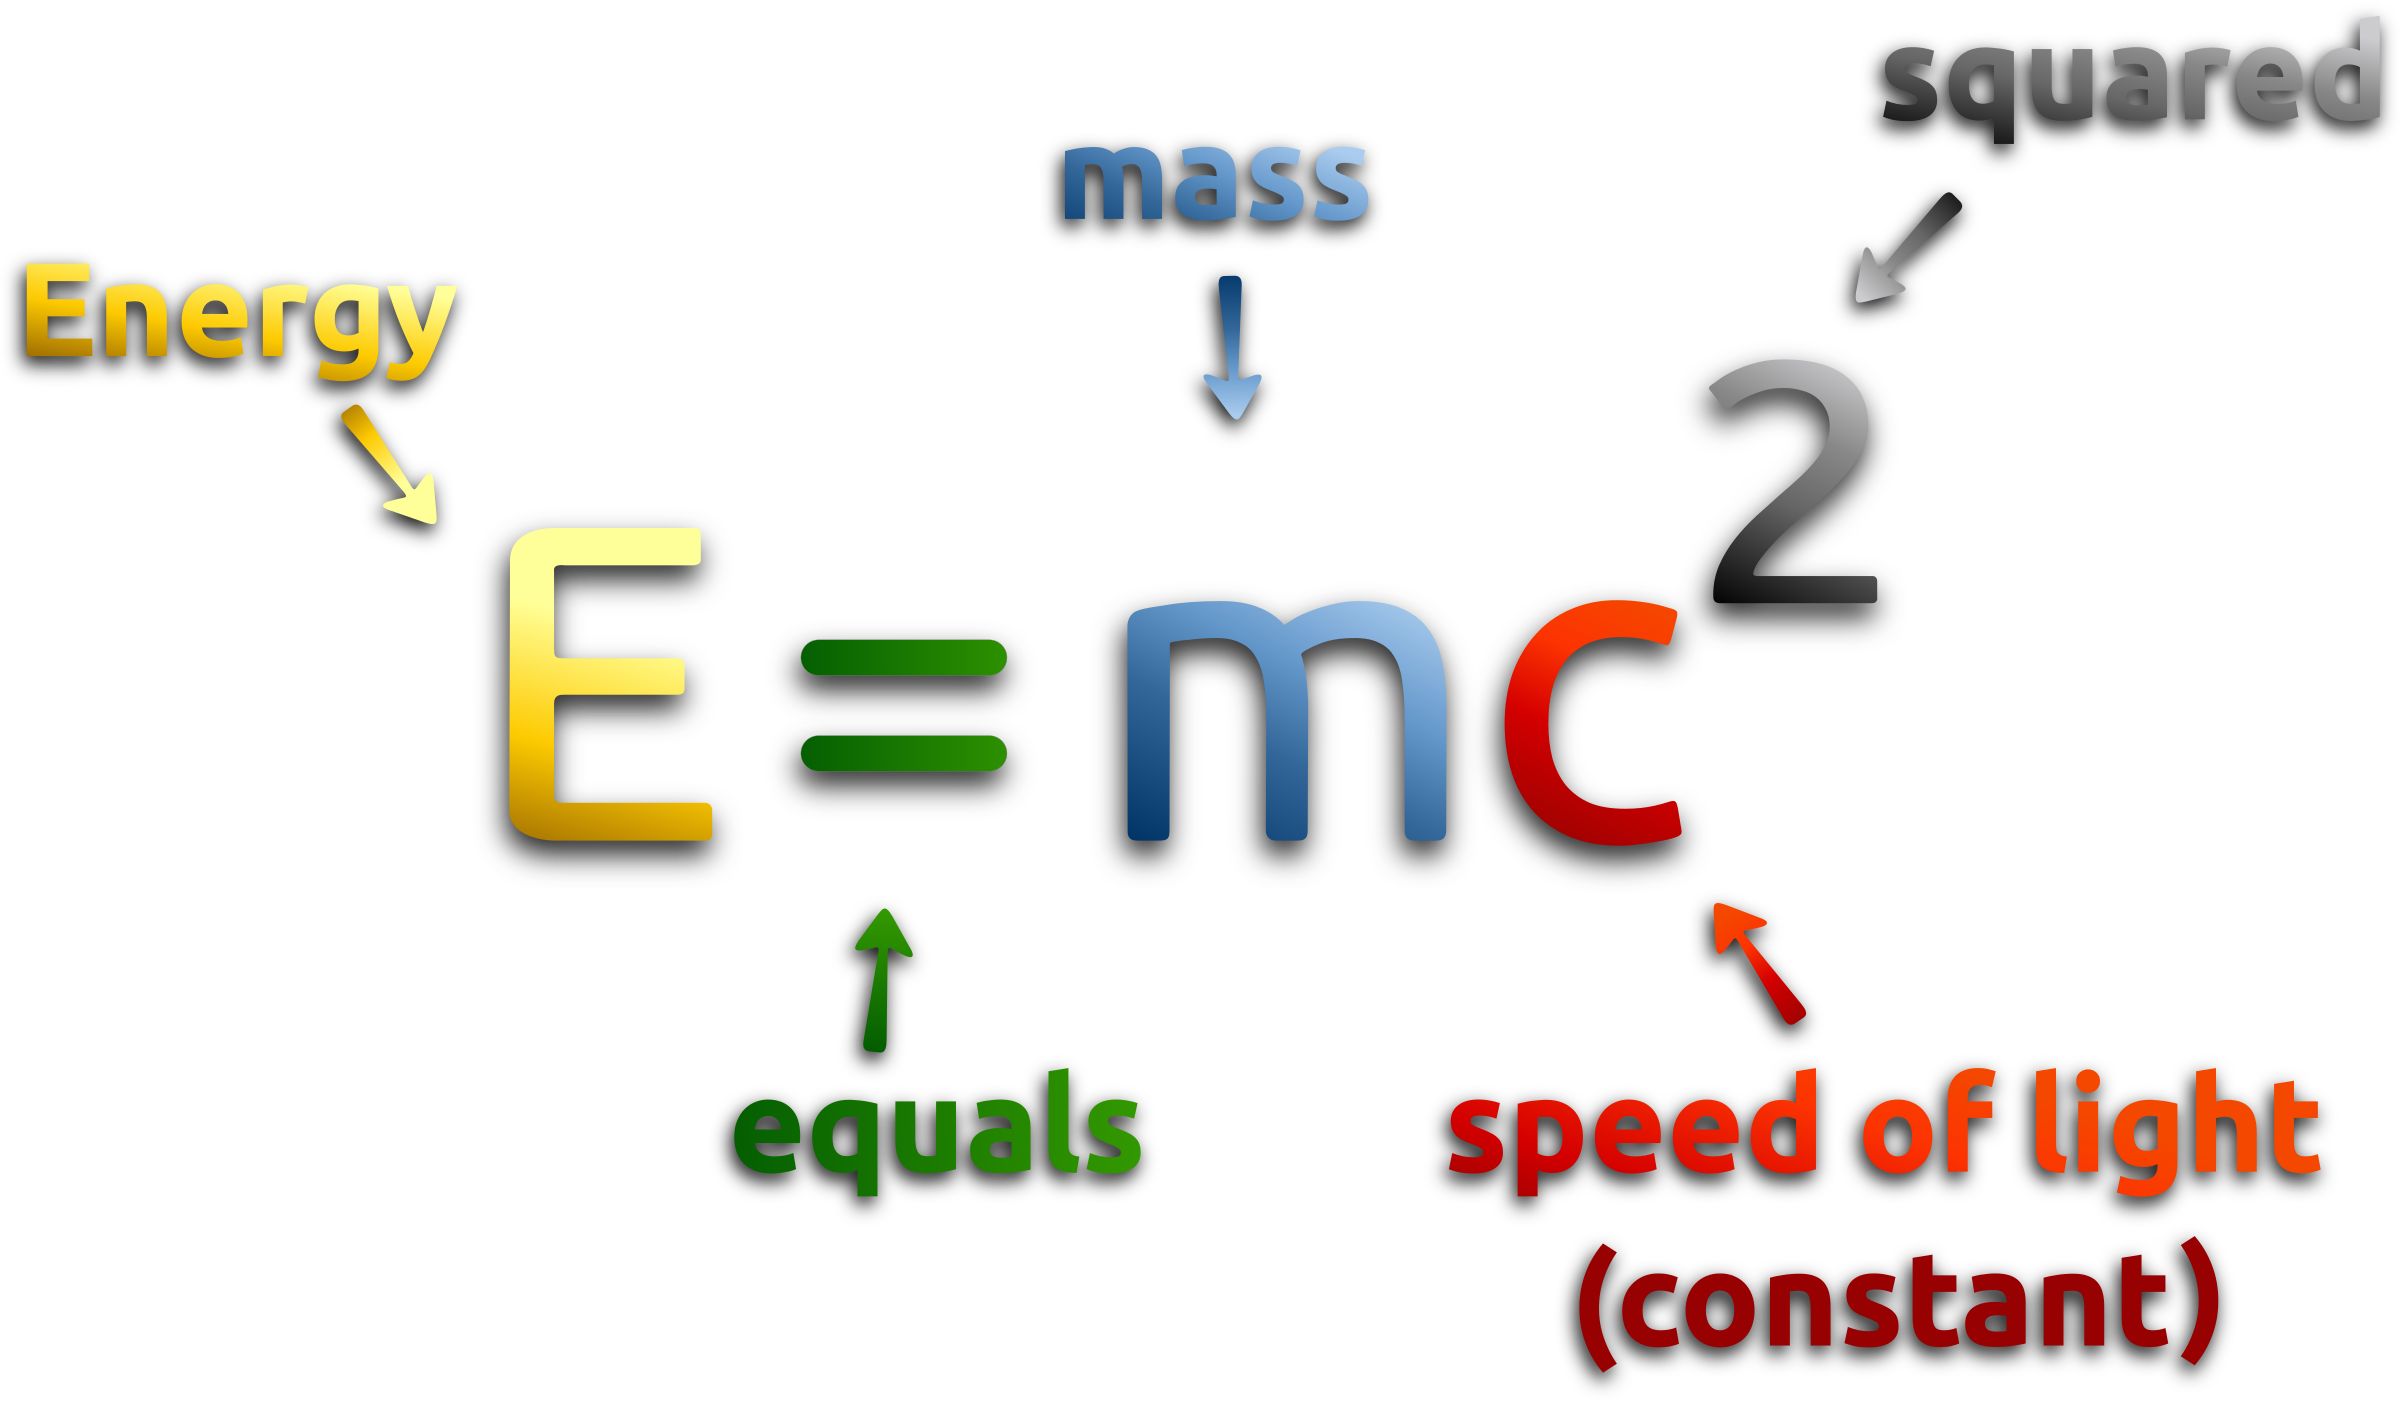 Einstein clipart emc2. Mass energy equivalence formula